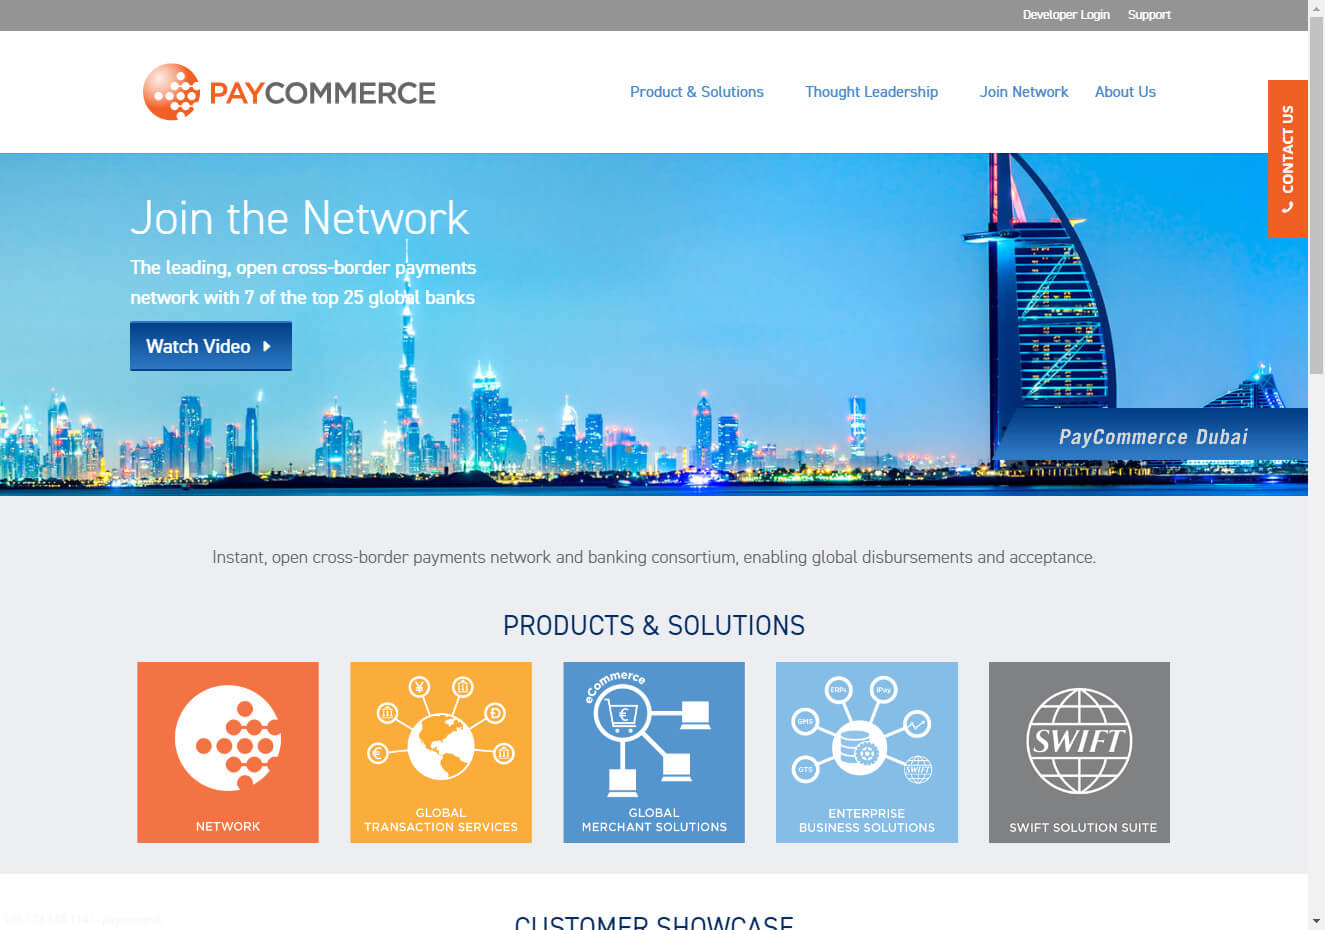 The Launch of PayCommerce's New WordPress Website